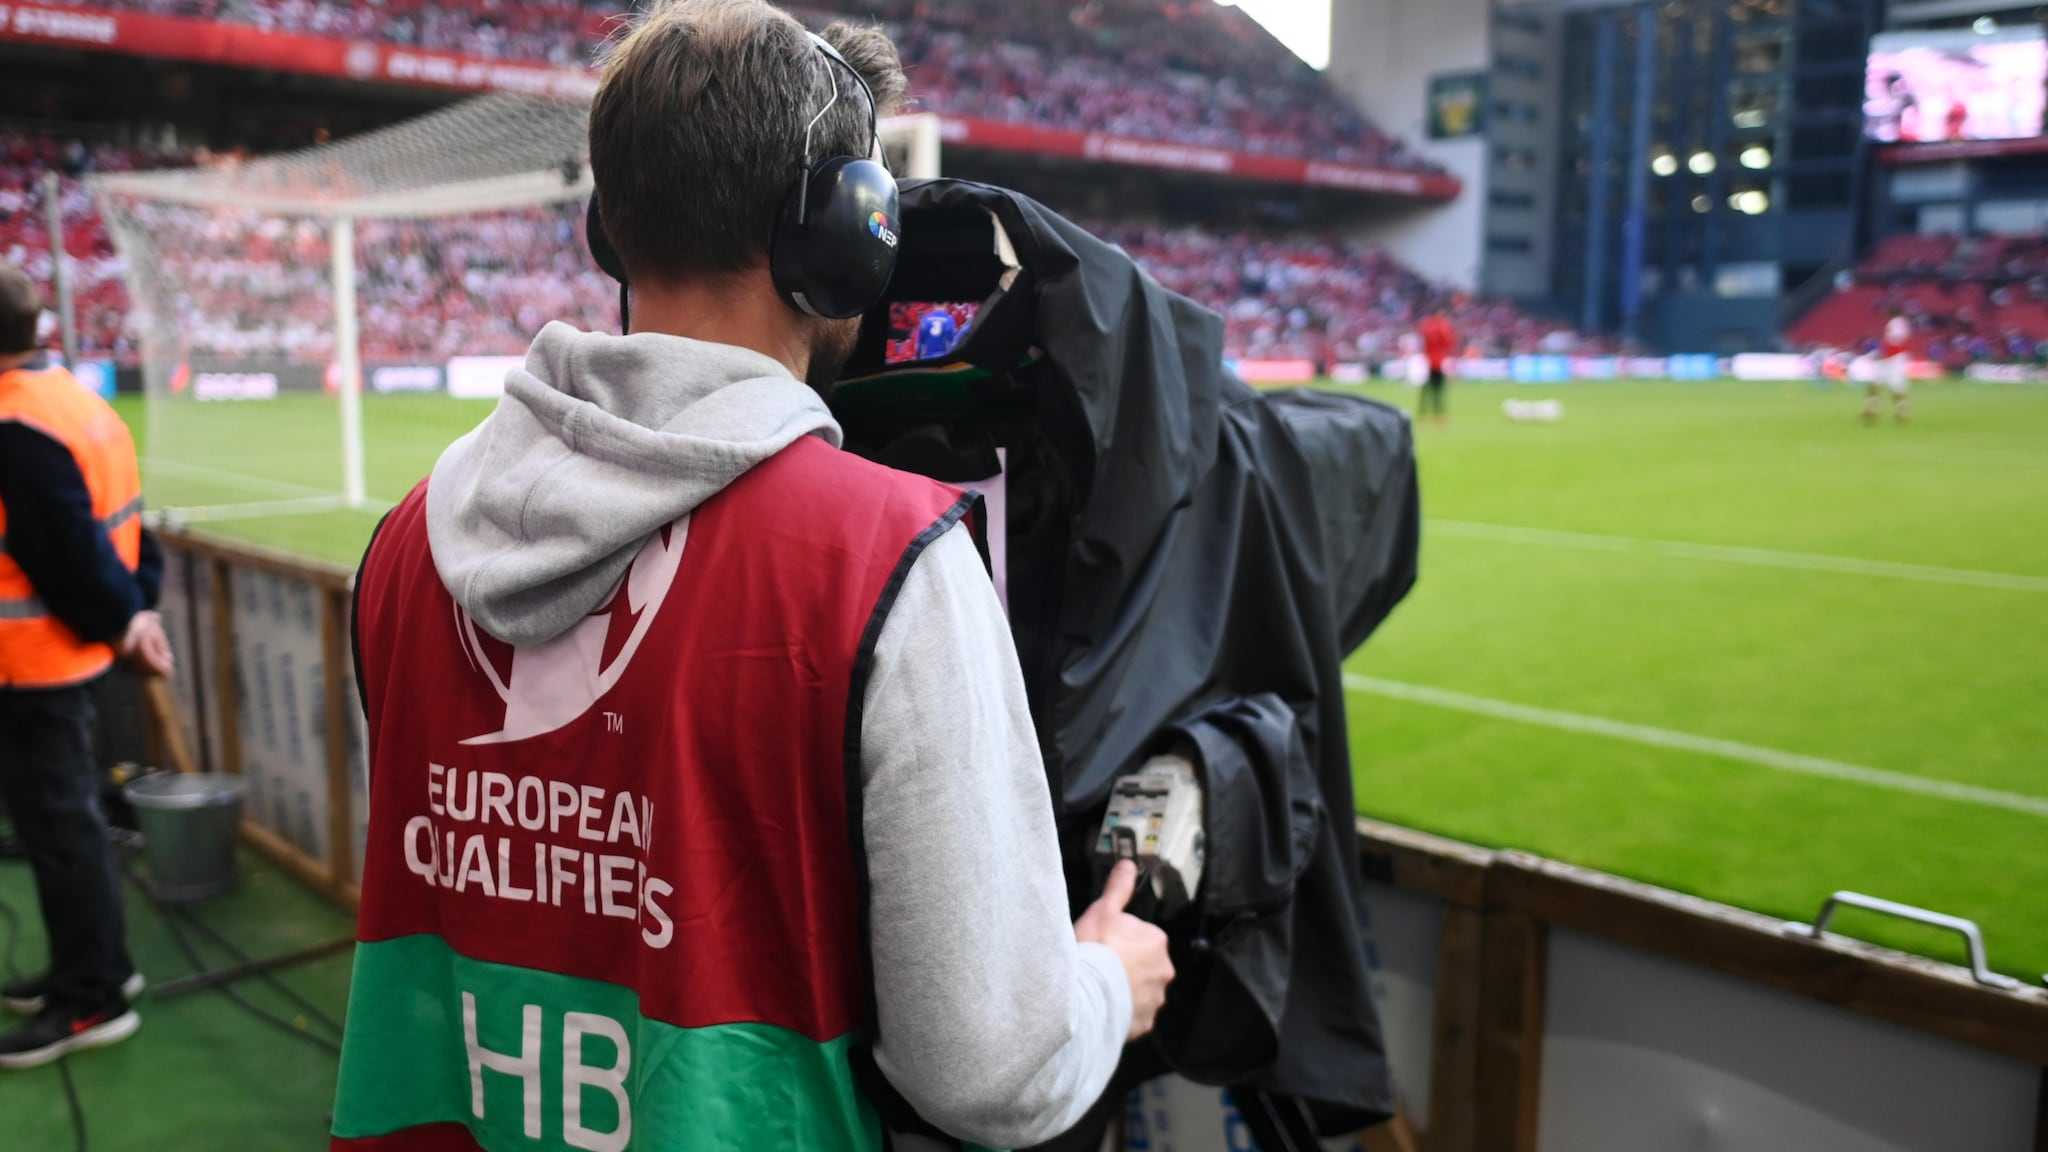 Where to watch European Qualifiers for the World Cup: TV broadcast partners, live streams